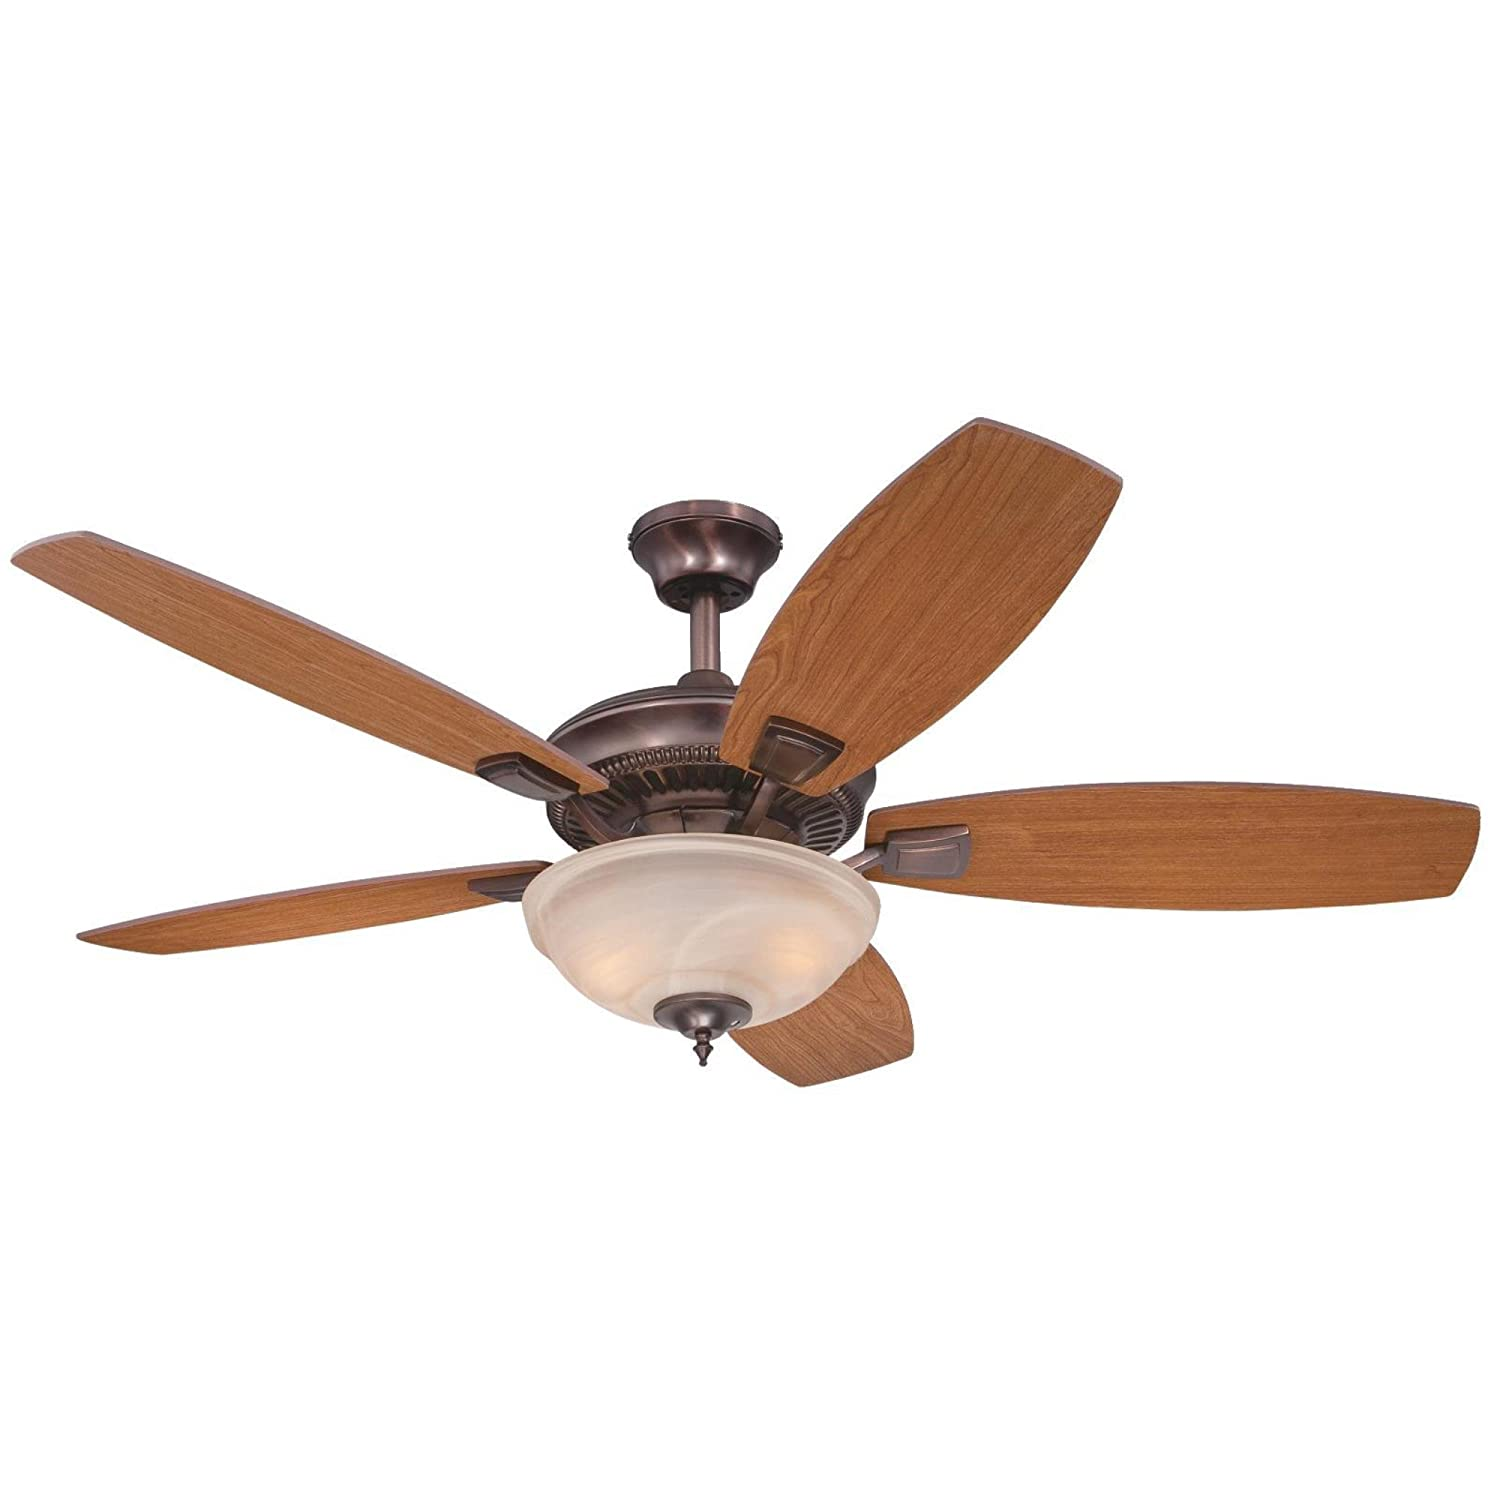 Westinghouse Lighting 7200600 Tulsa Two-Light 52 Reversible Plywood Five-Blade Indoor Ceiling Fan, Oil Brushed Bronze with Amber Alabaster Glass Bowl